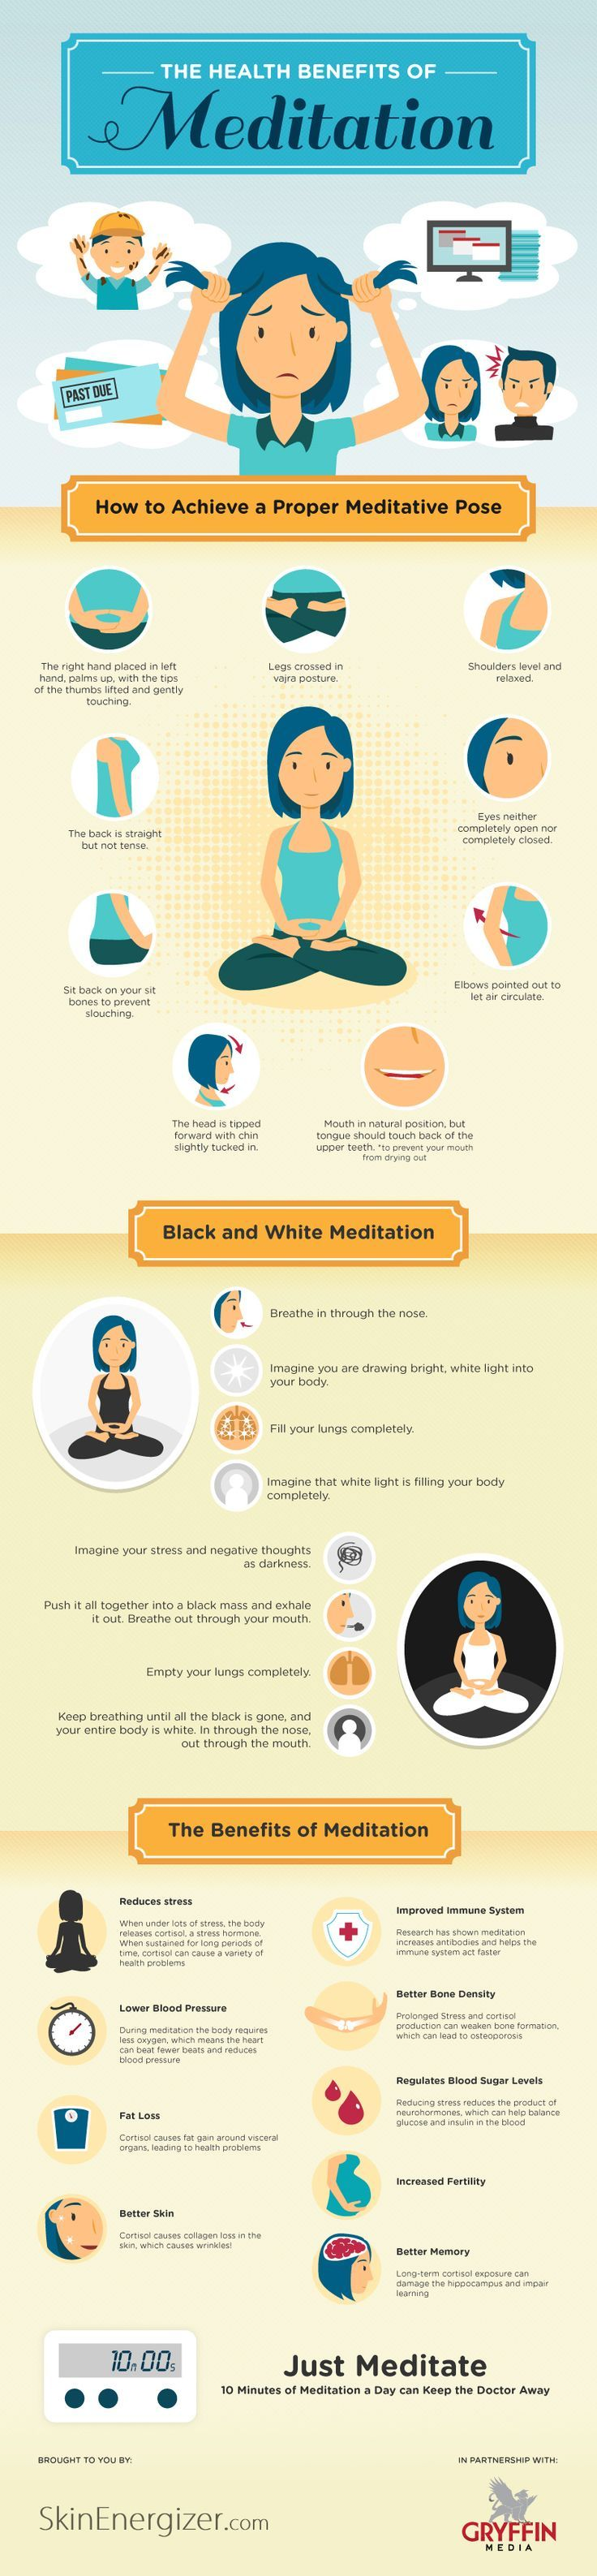 an analysis of the topic of the meditation movement and the benefits Although research on mindfulness, especially with children and adolescents, is still in relatively early stages, an increasing number of studies have shown the potential benefits of mindfulness practices for students' physical health, psychological well-being, social skills, academic performance, and more.